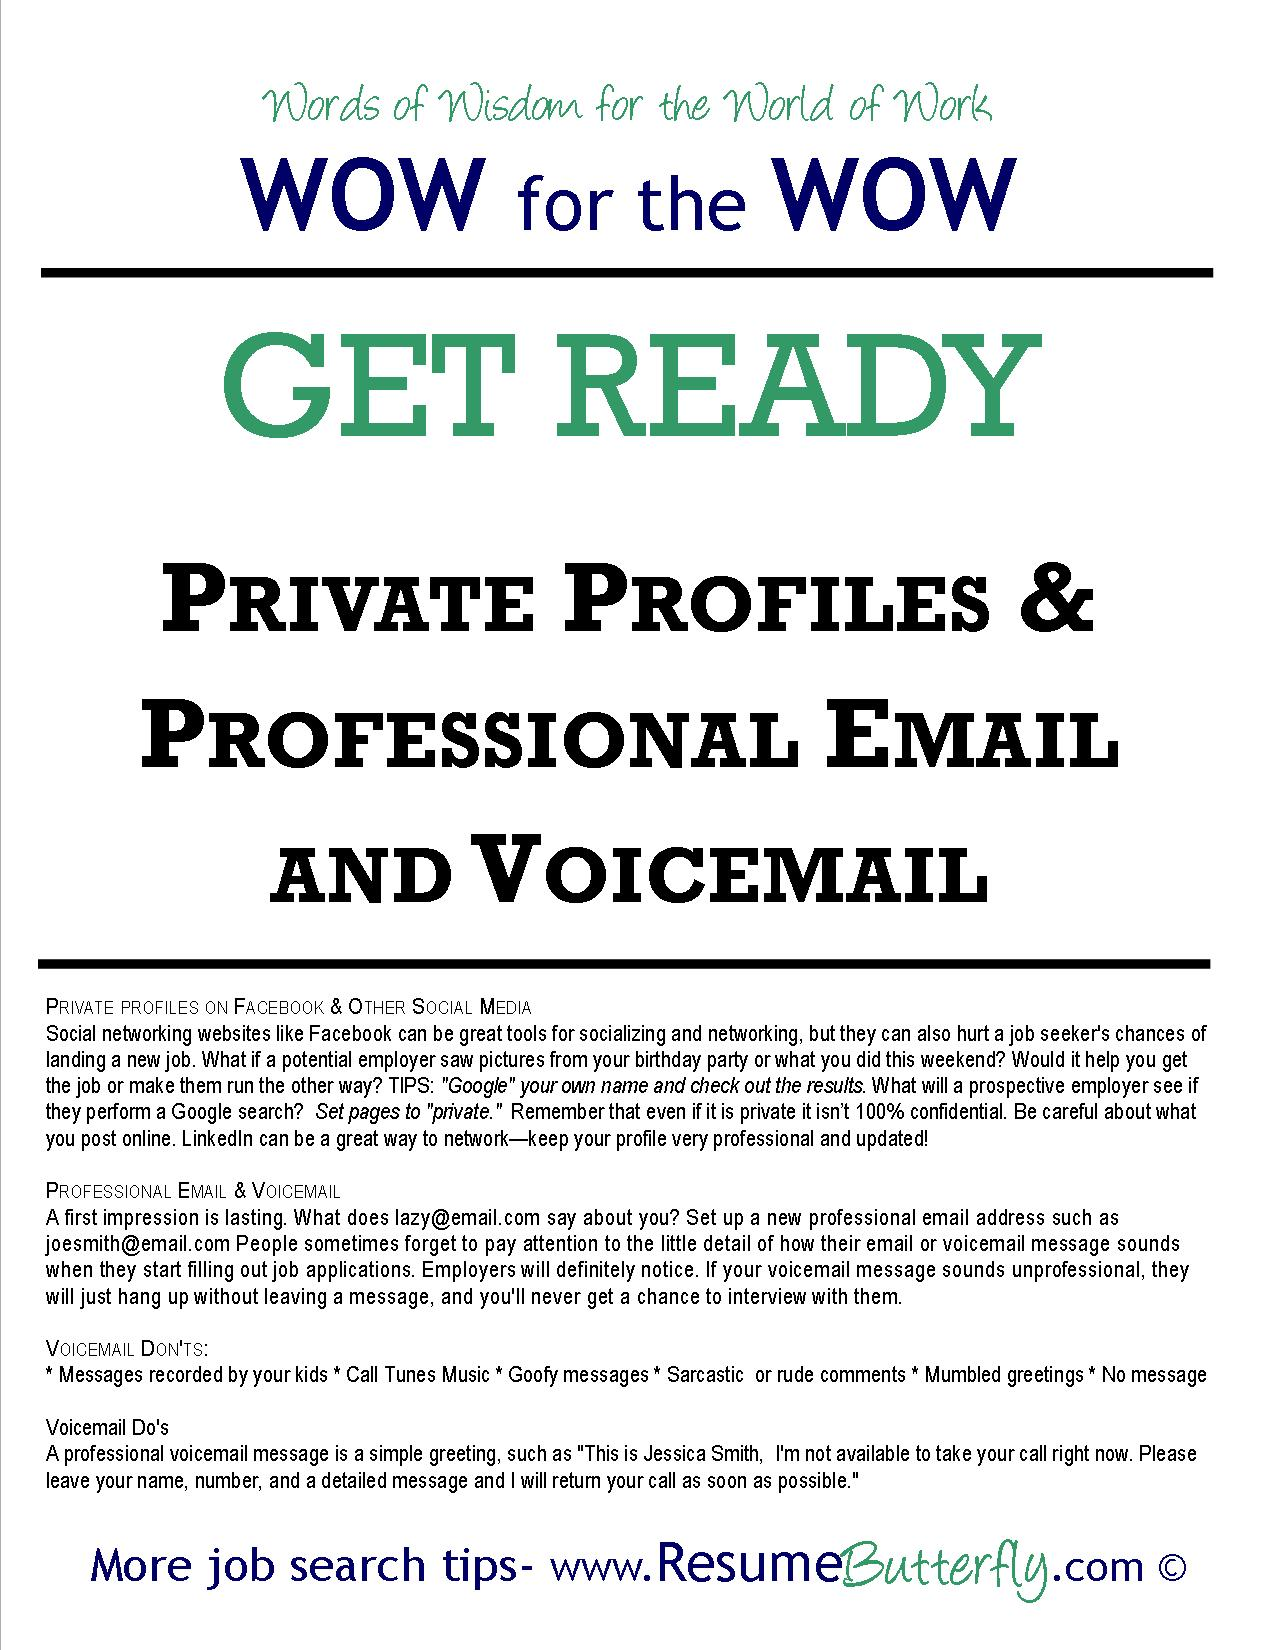 PRIVATE PROFILES & PROFESSIONAL EMAIL AND VOICEMAIL - Resume Butterfly